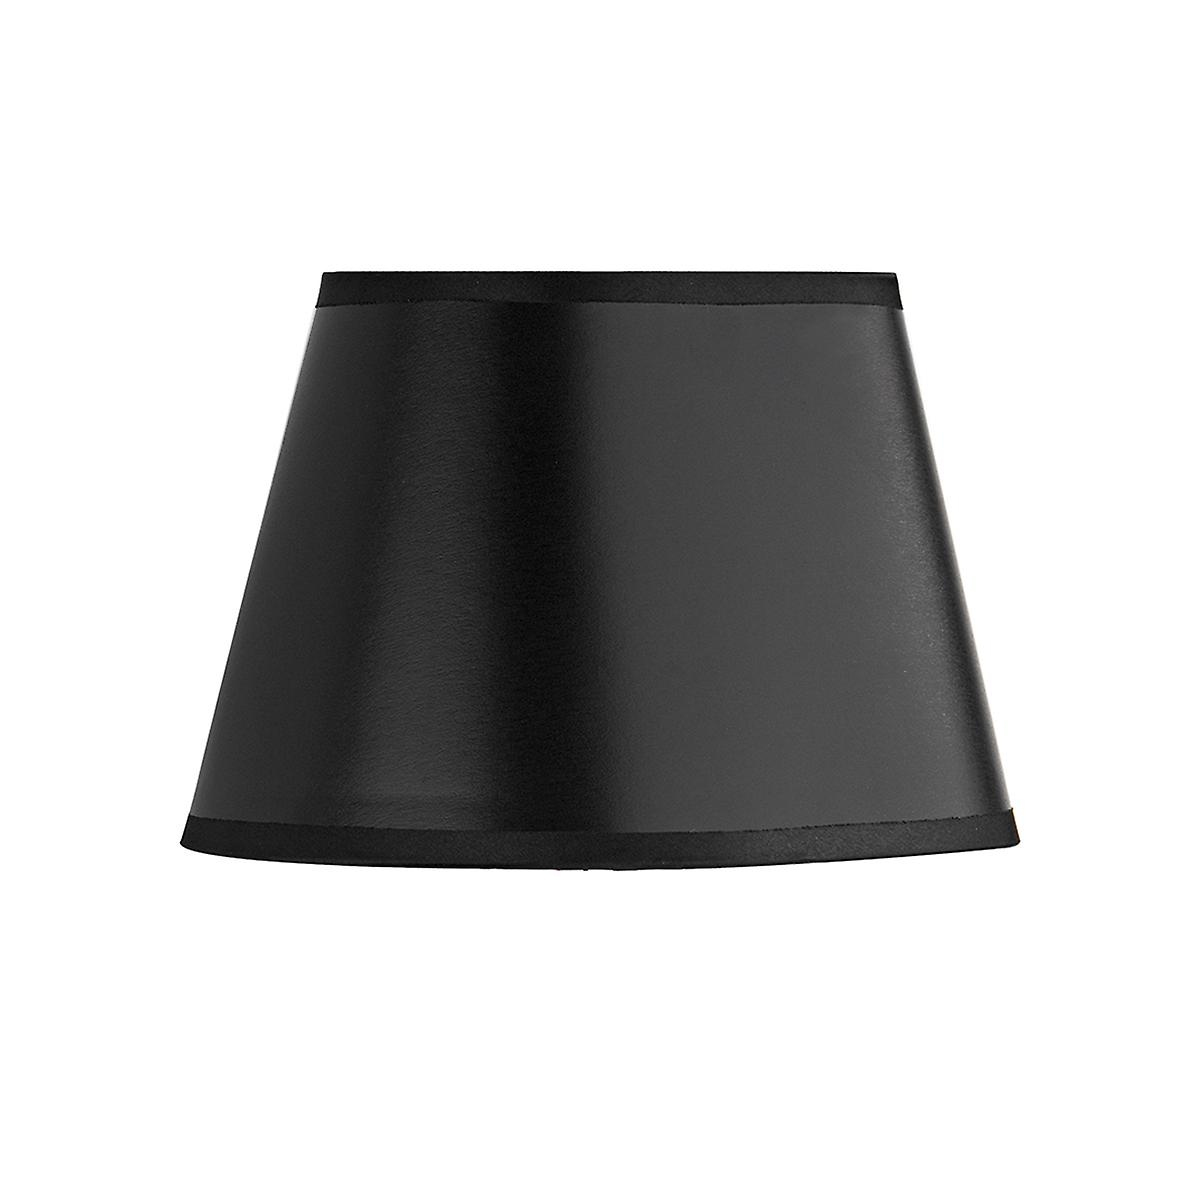 Dar LEX2622 Lexington Small Fabric Shade With A Black And Gold Finish